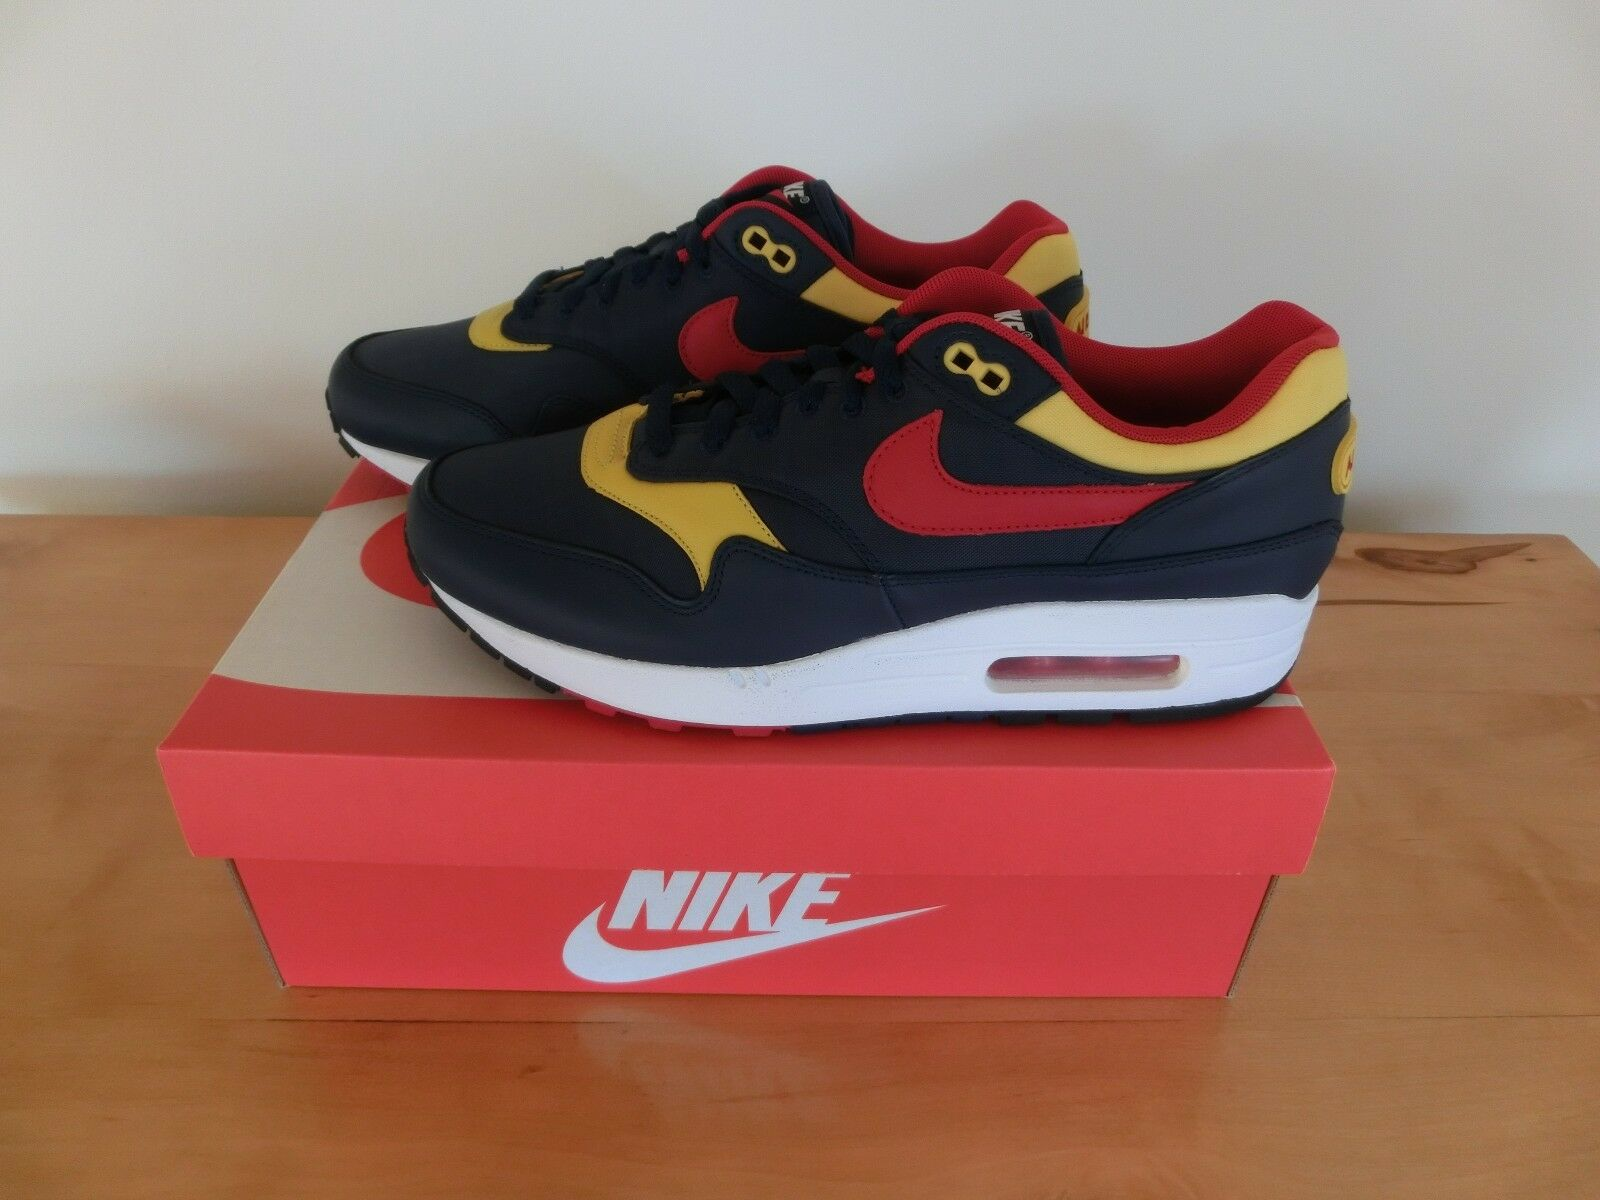 Nike Air Max 1 Premium 'Logo Pack' EUR 43 Navy/ROT UK 8.5 US 9.5 Navy/ROT 43 Neu & OVP 162229